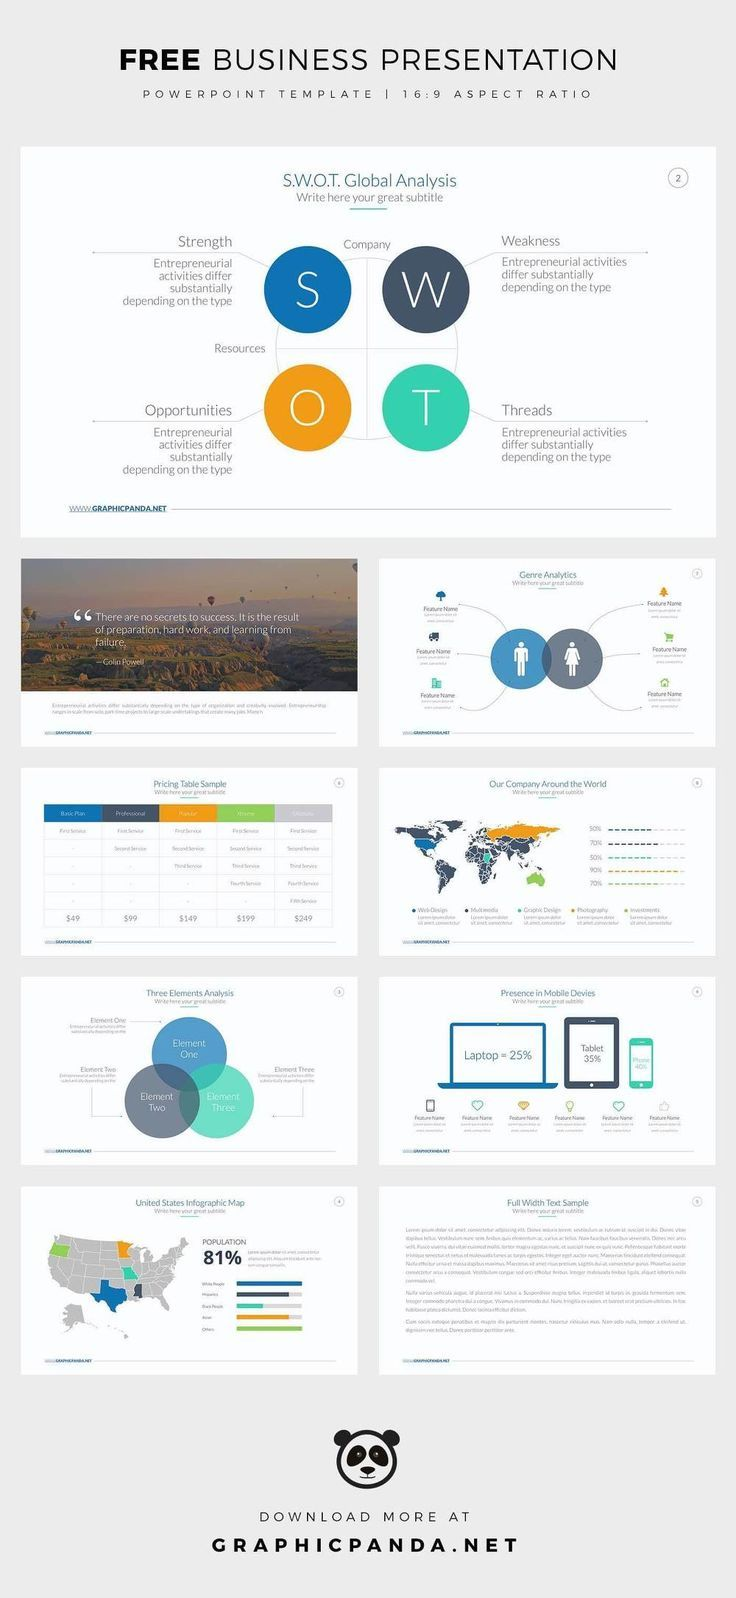 ppt free business ppt free business presentation powerpoint template ppt wajeb Images